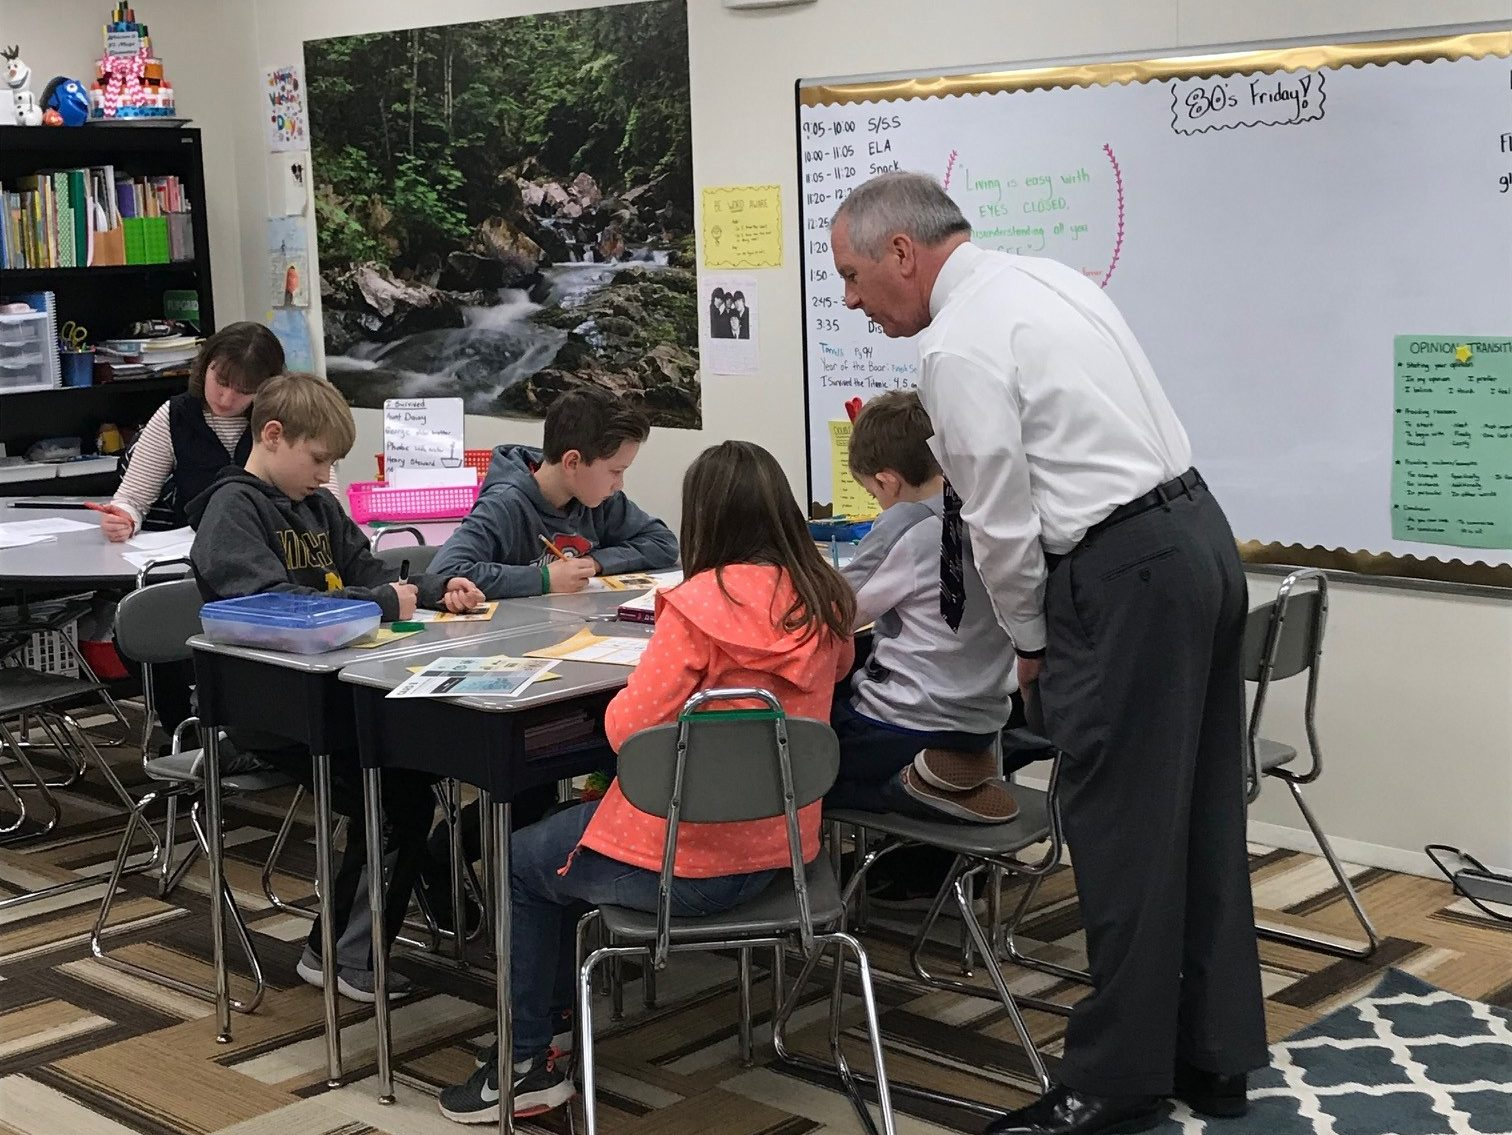 Bankers teaching financial education through junior achievement to local students.